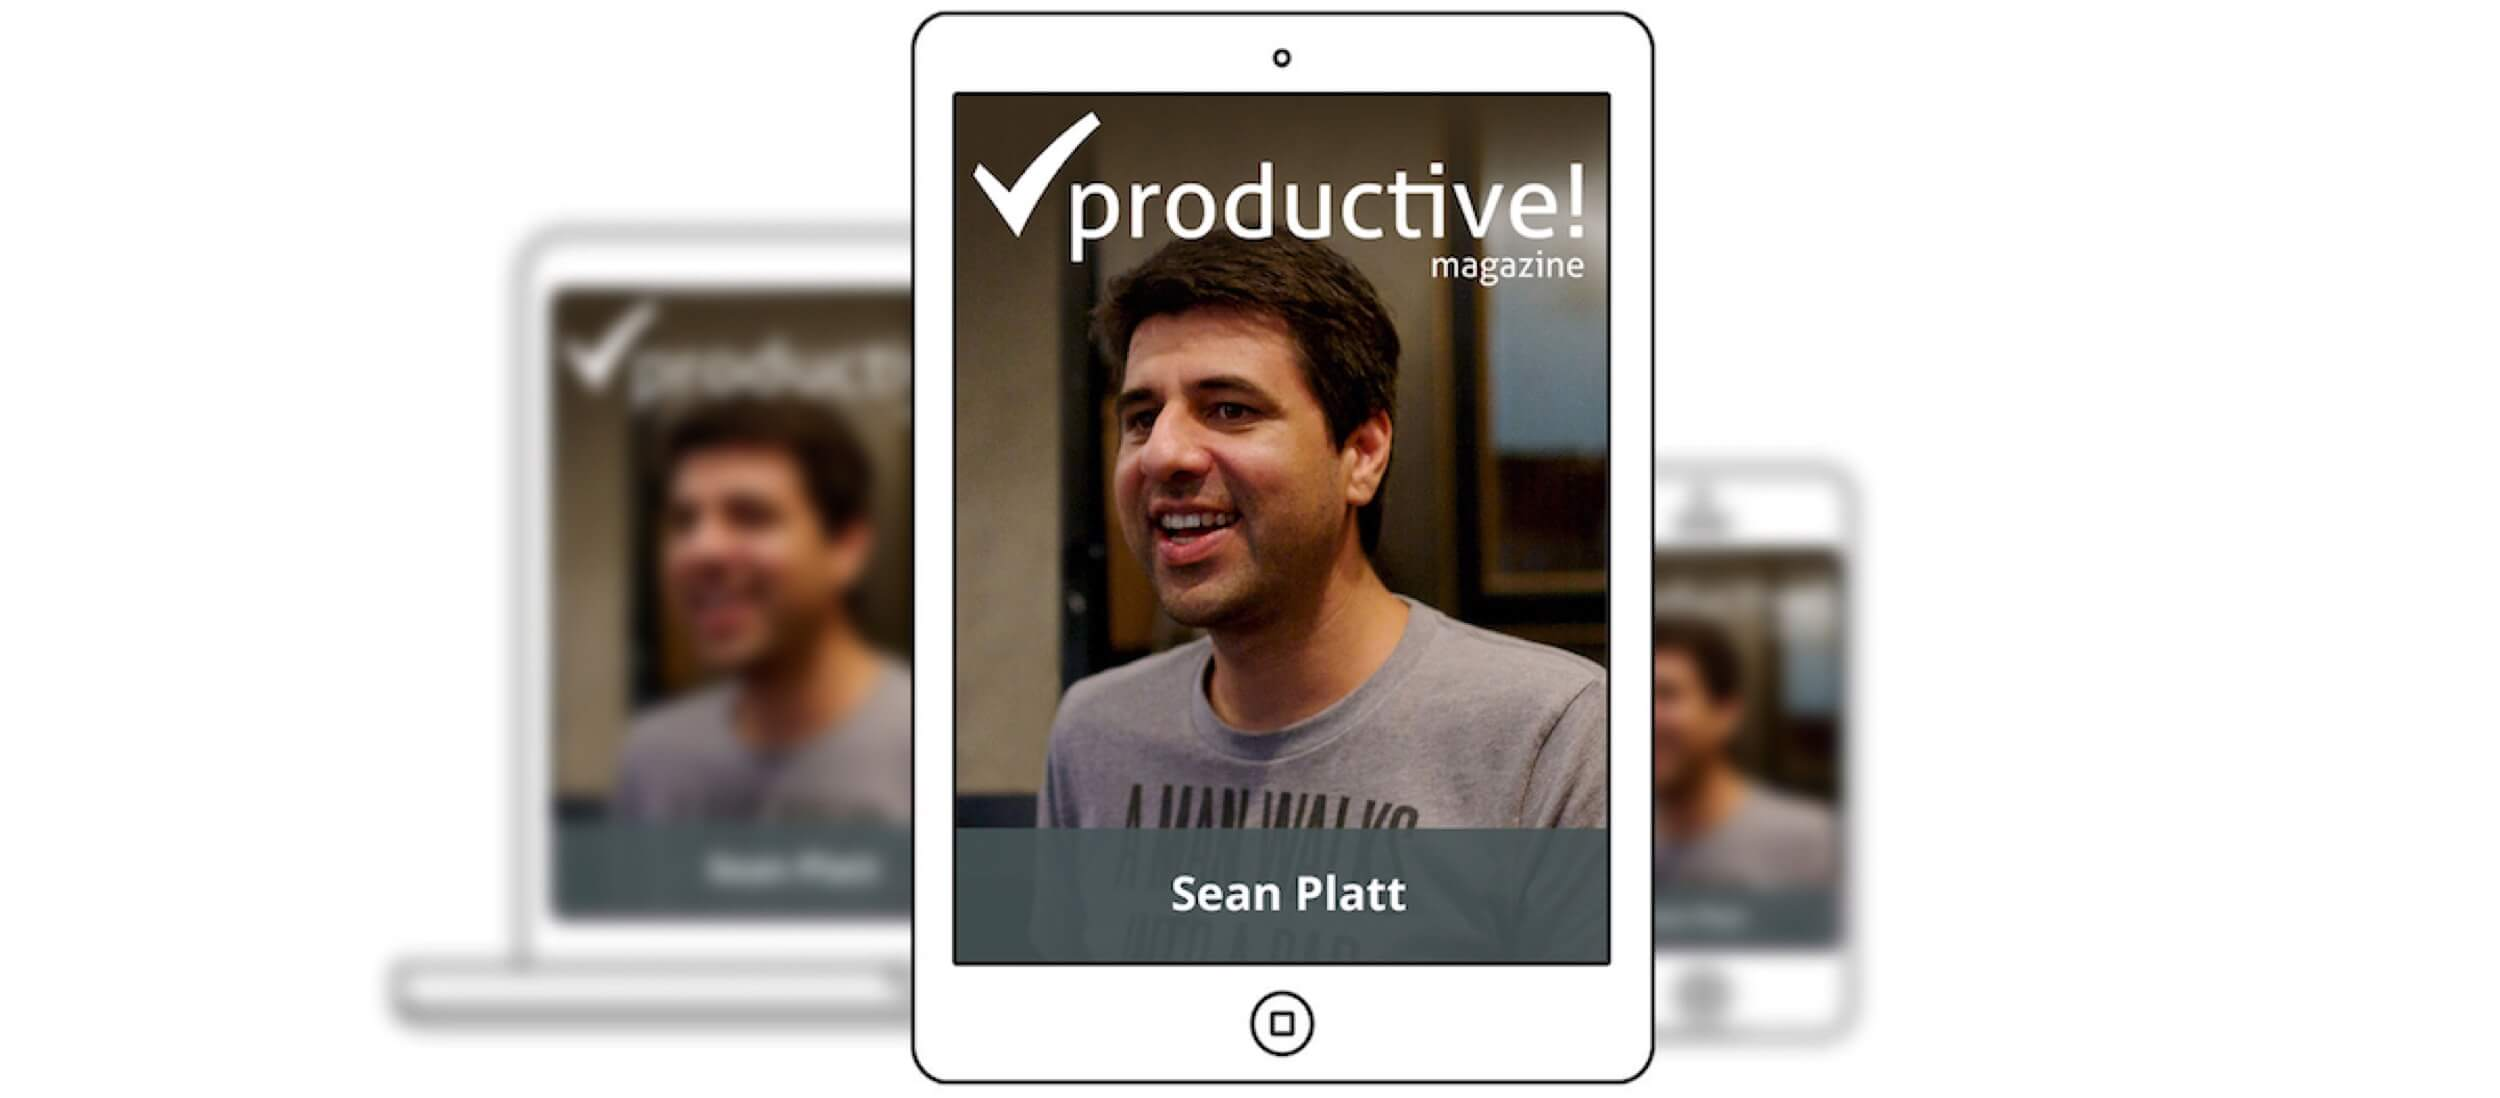 Get focused in 5 simple steps - intro to Productive! Magazine No.32 with Sean Platt